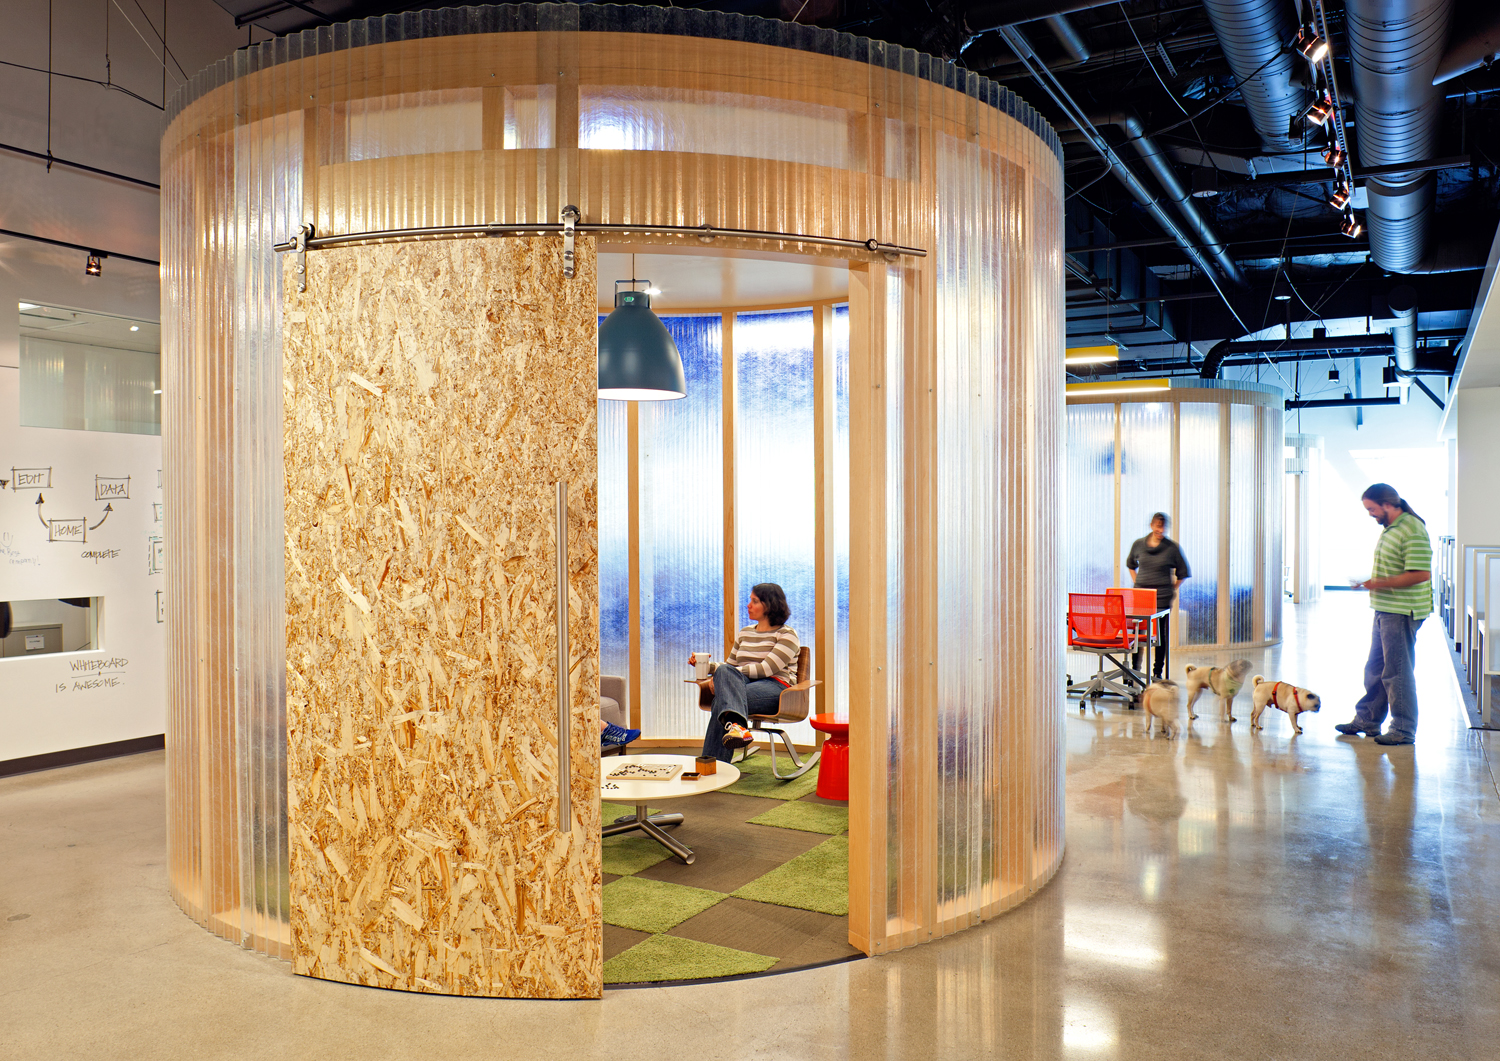 Translucent material provides privacy in this conference room